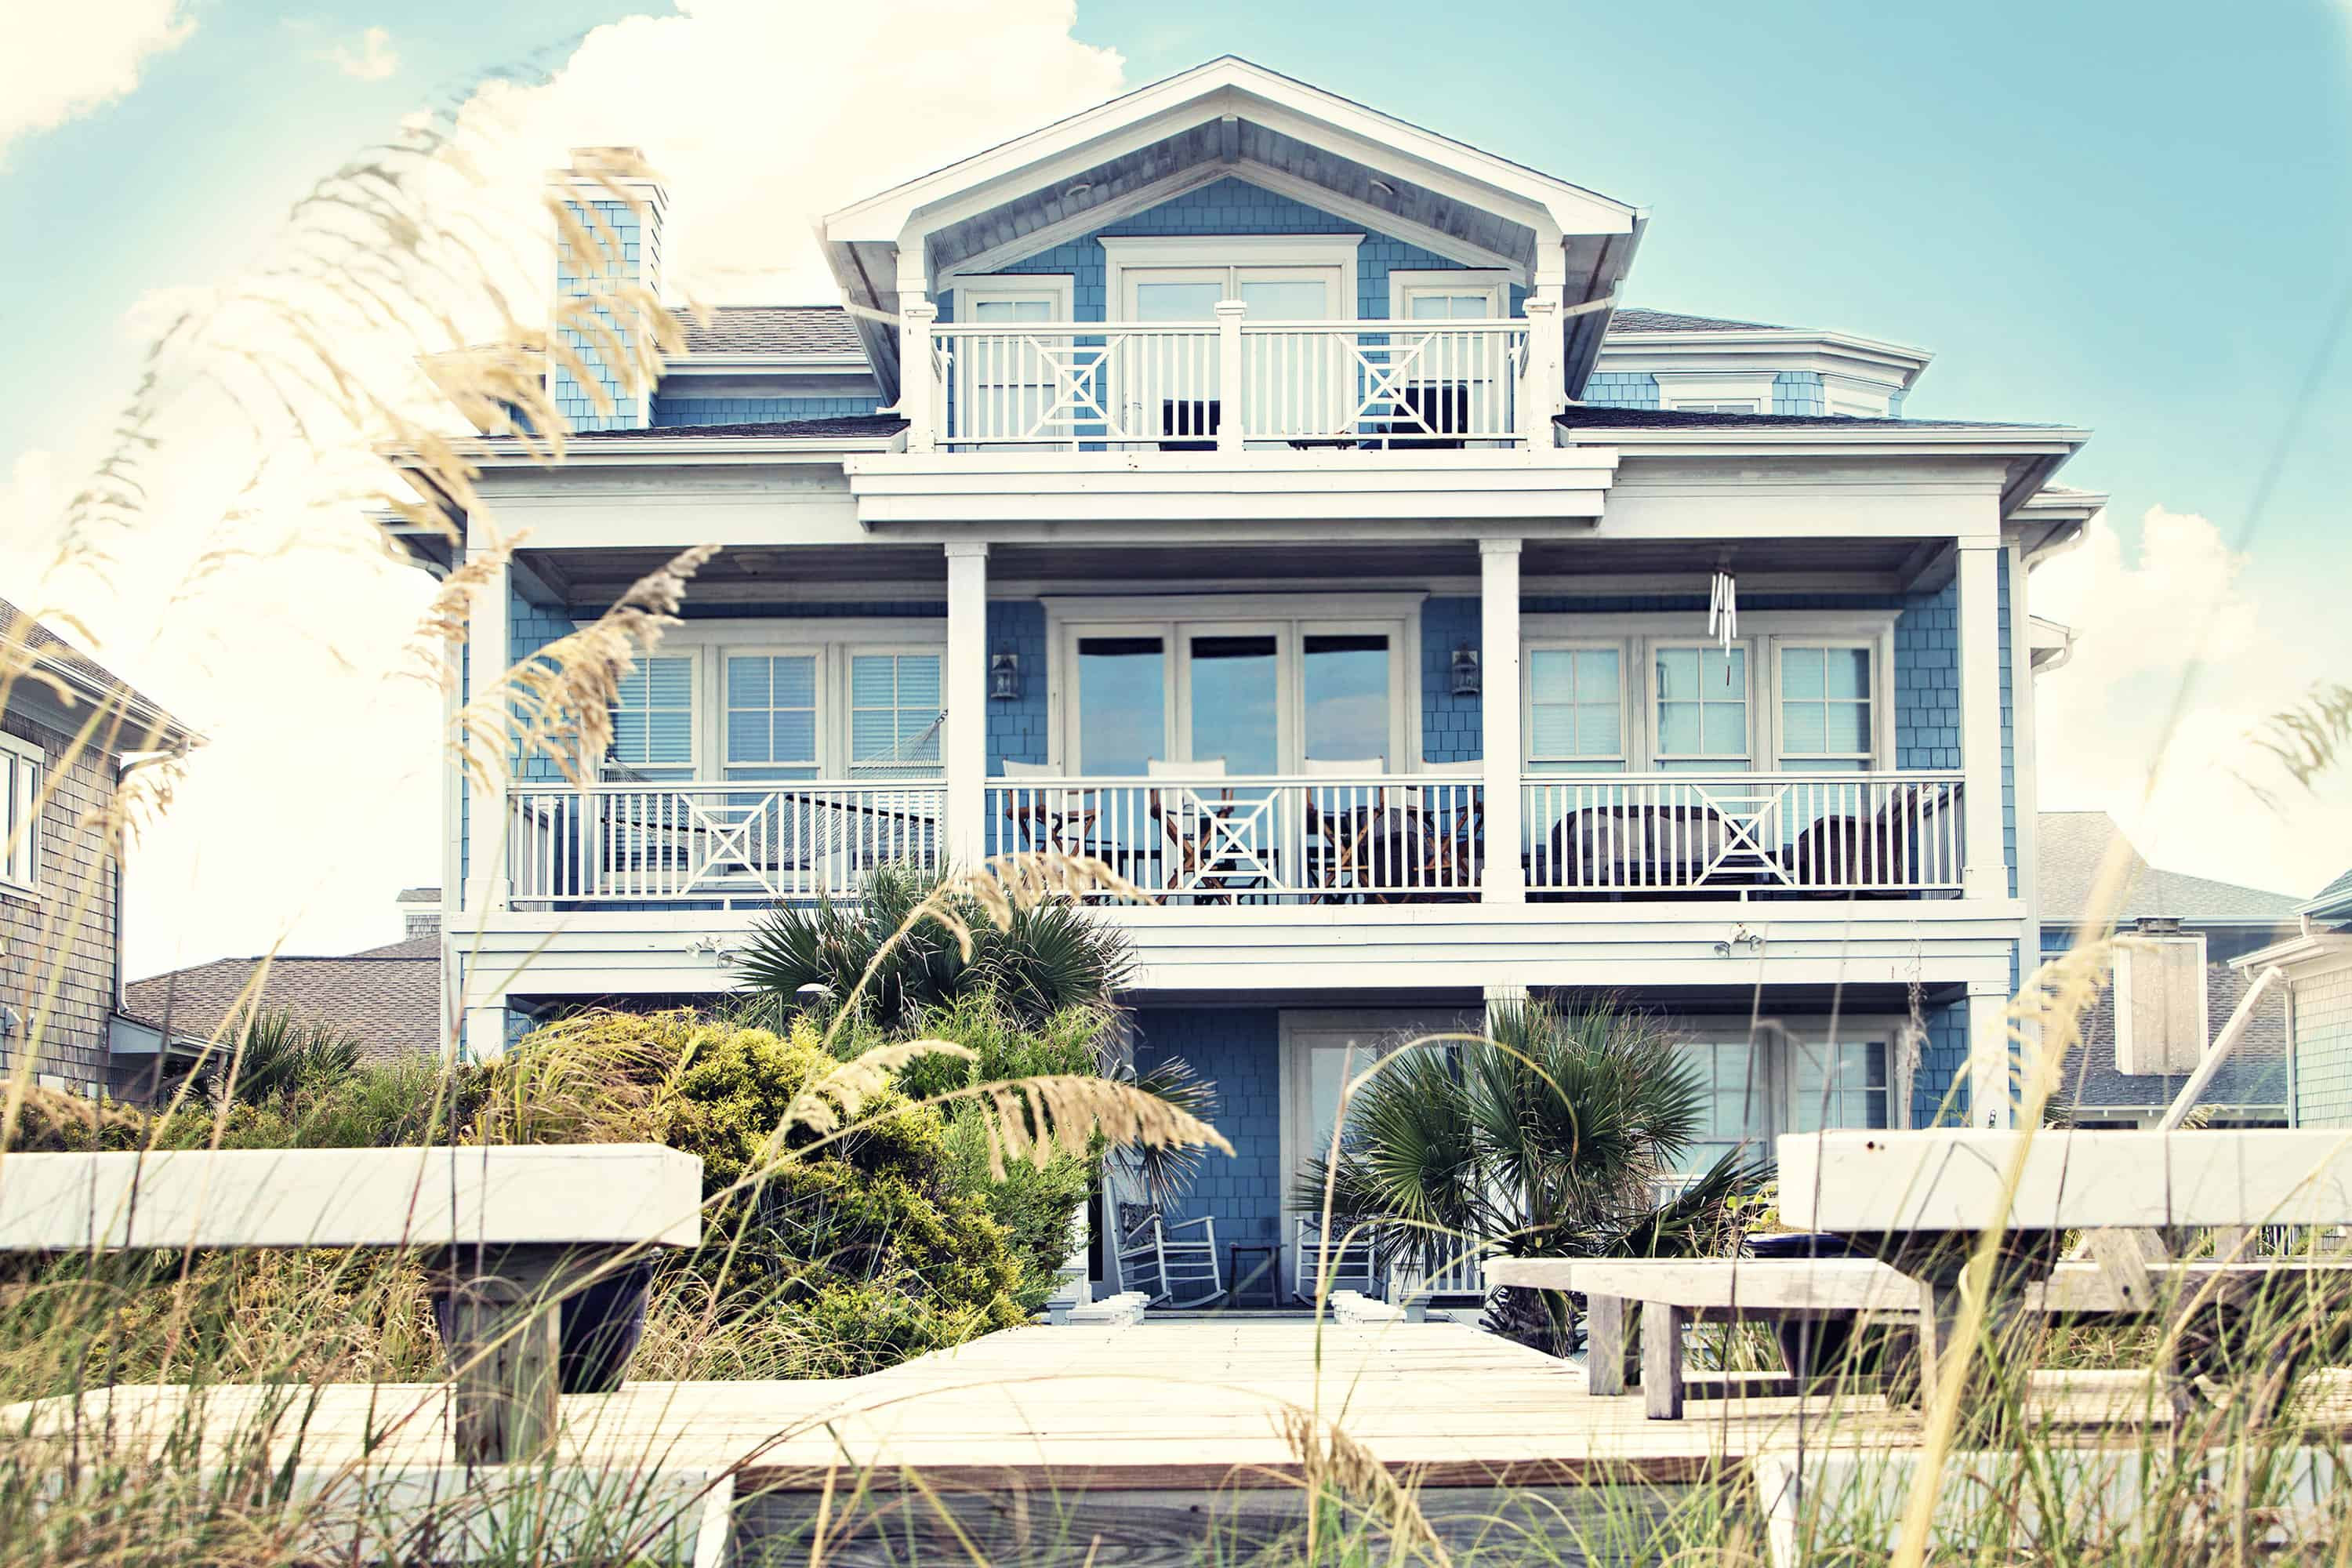 5 Tips for Those Looking to Make Their Summer Vacation a Real Estate Tax Write-Off